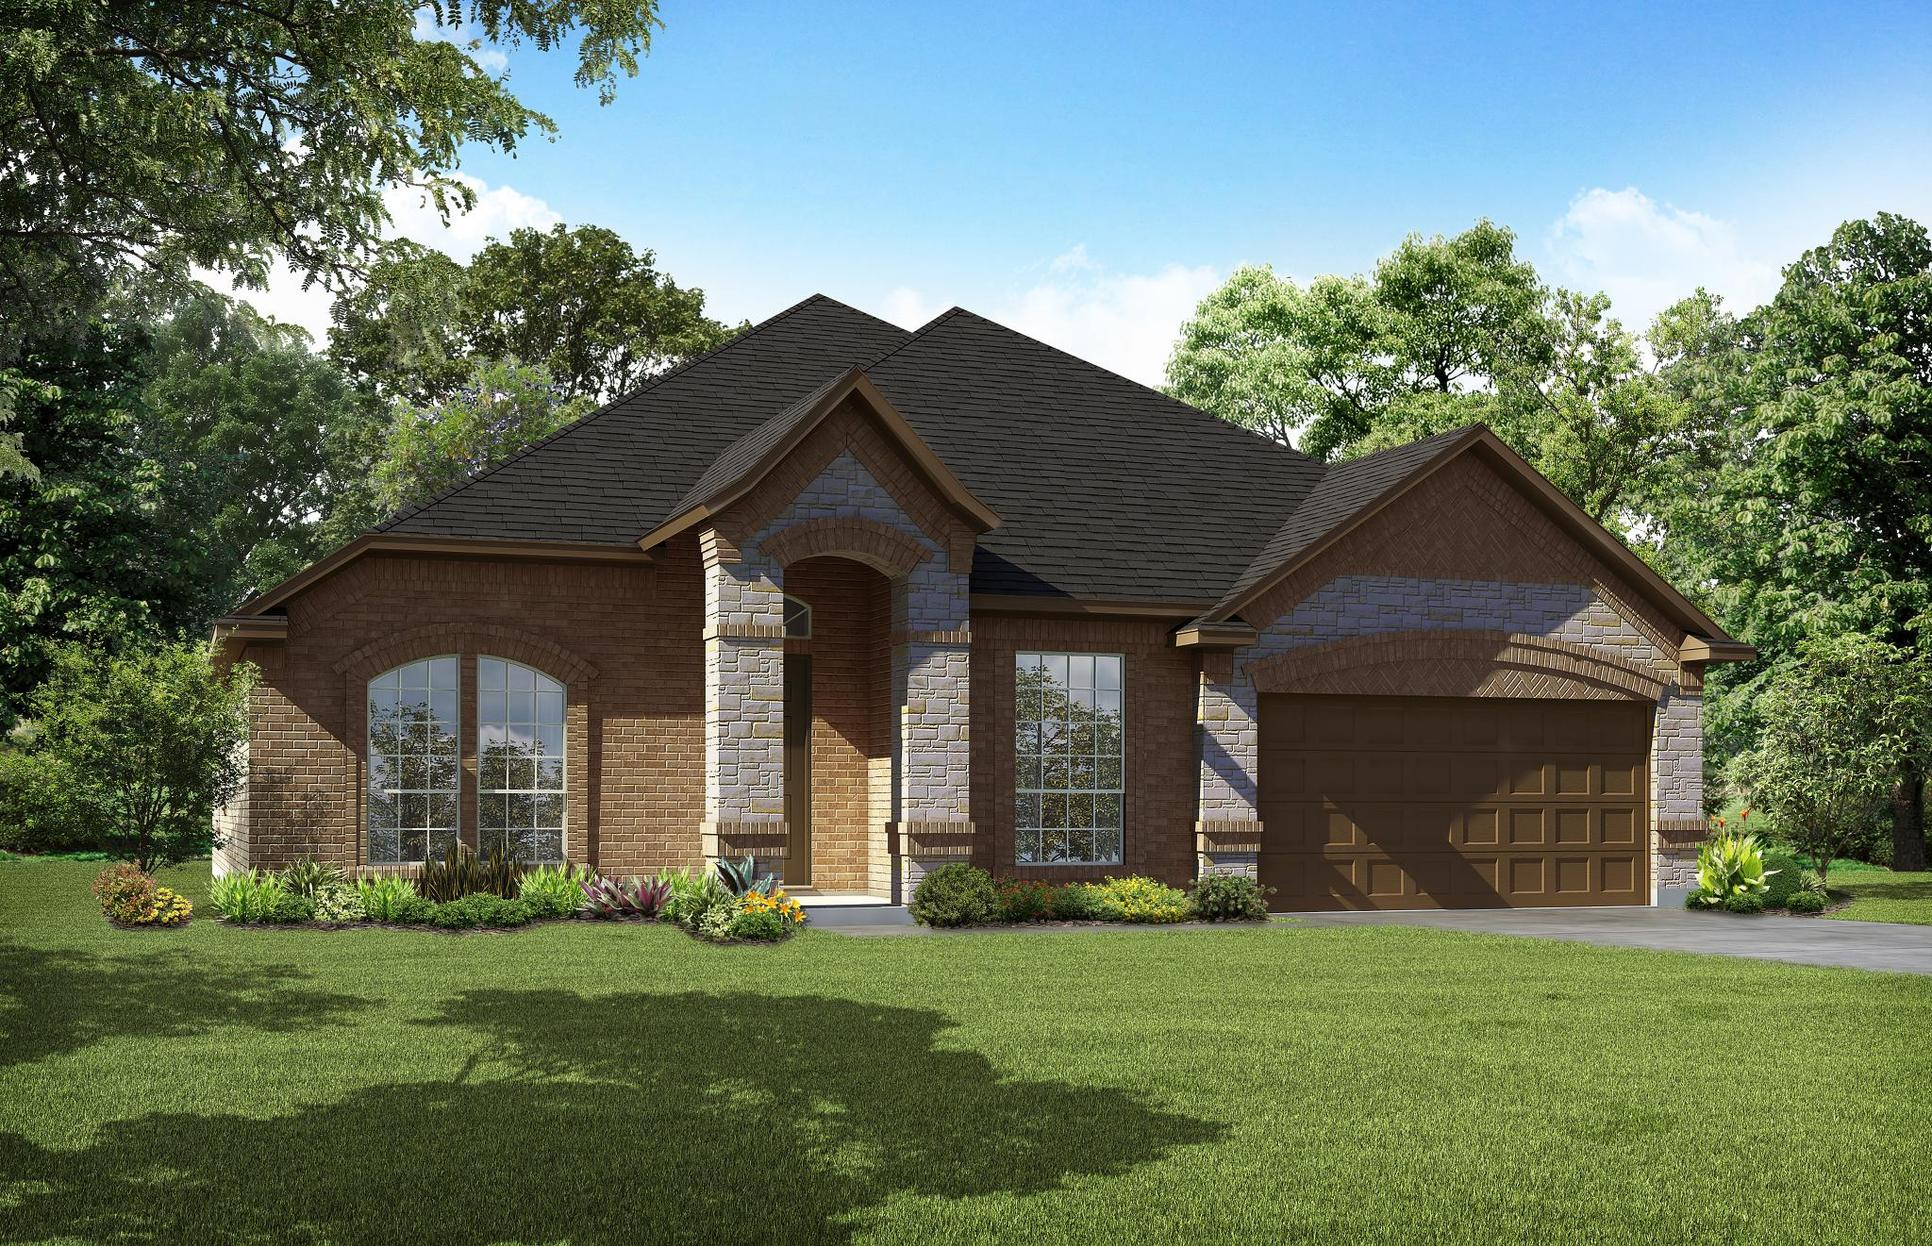 Exterior:2671 A with Stone